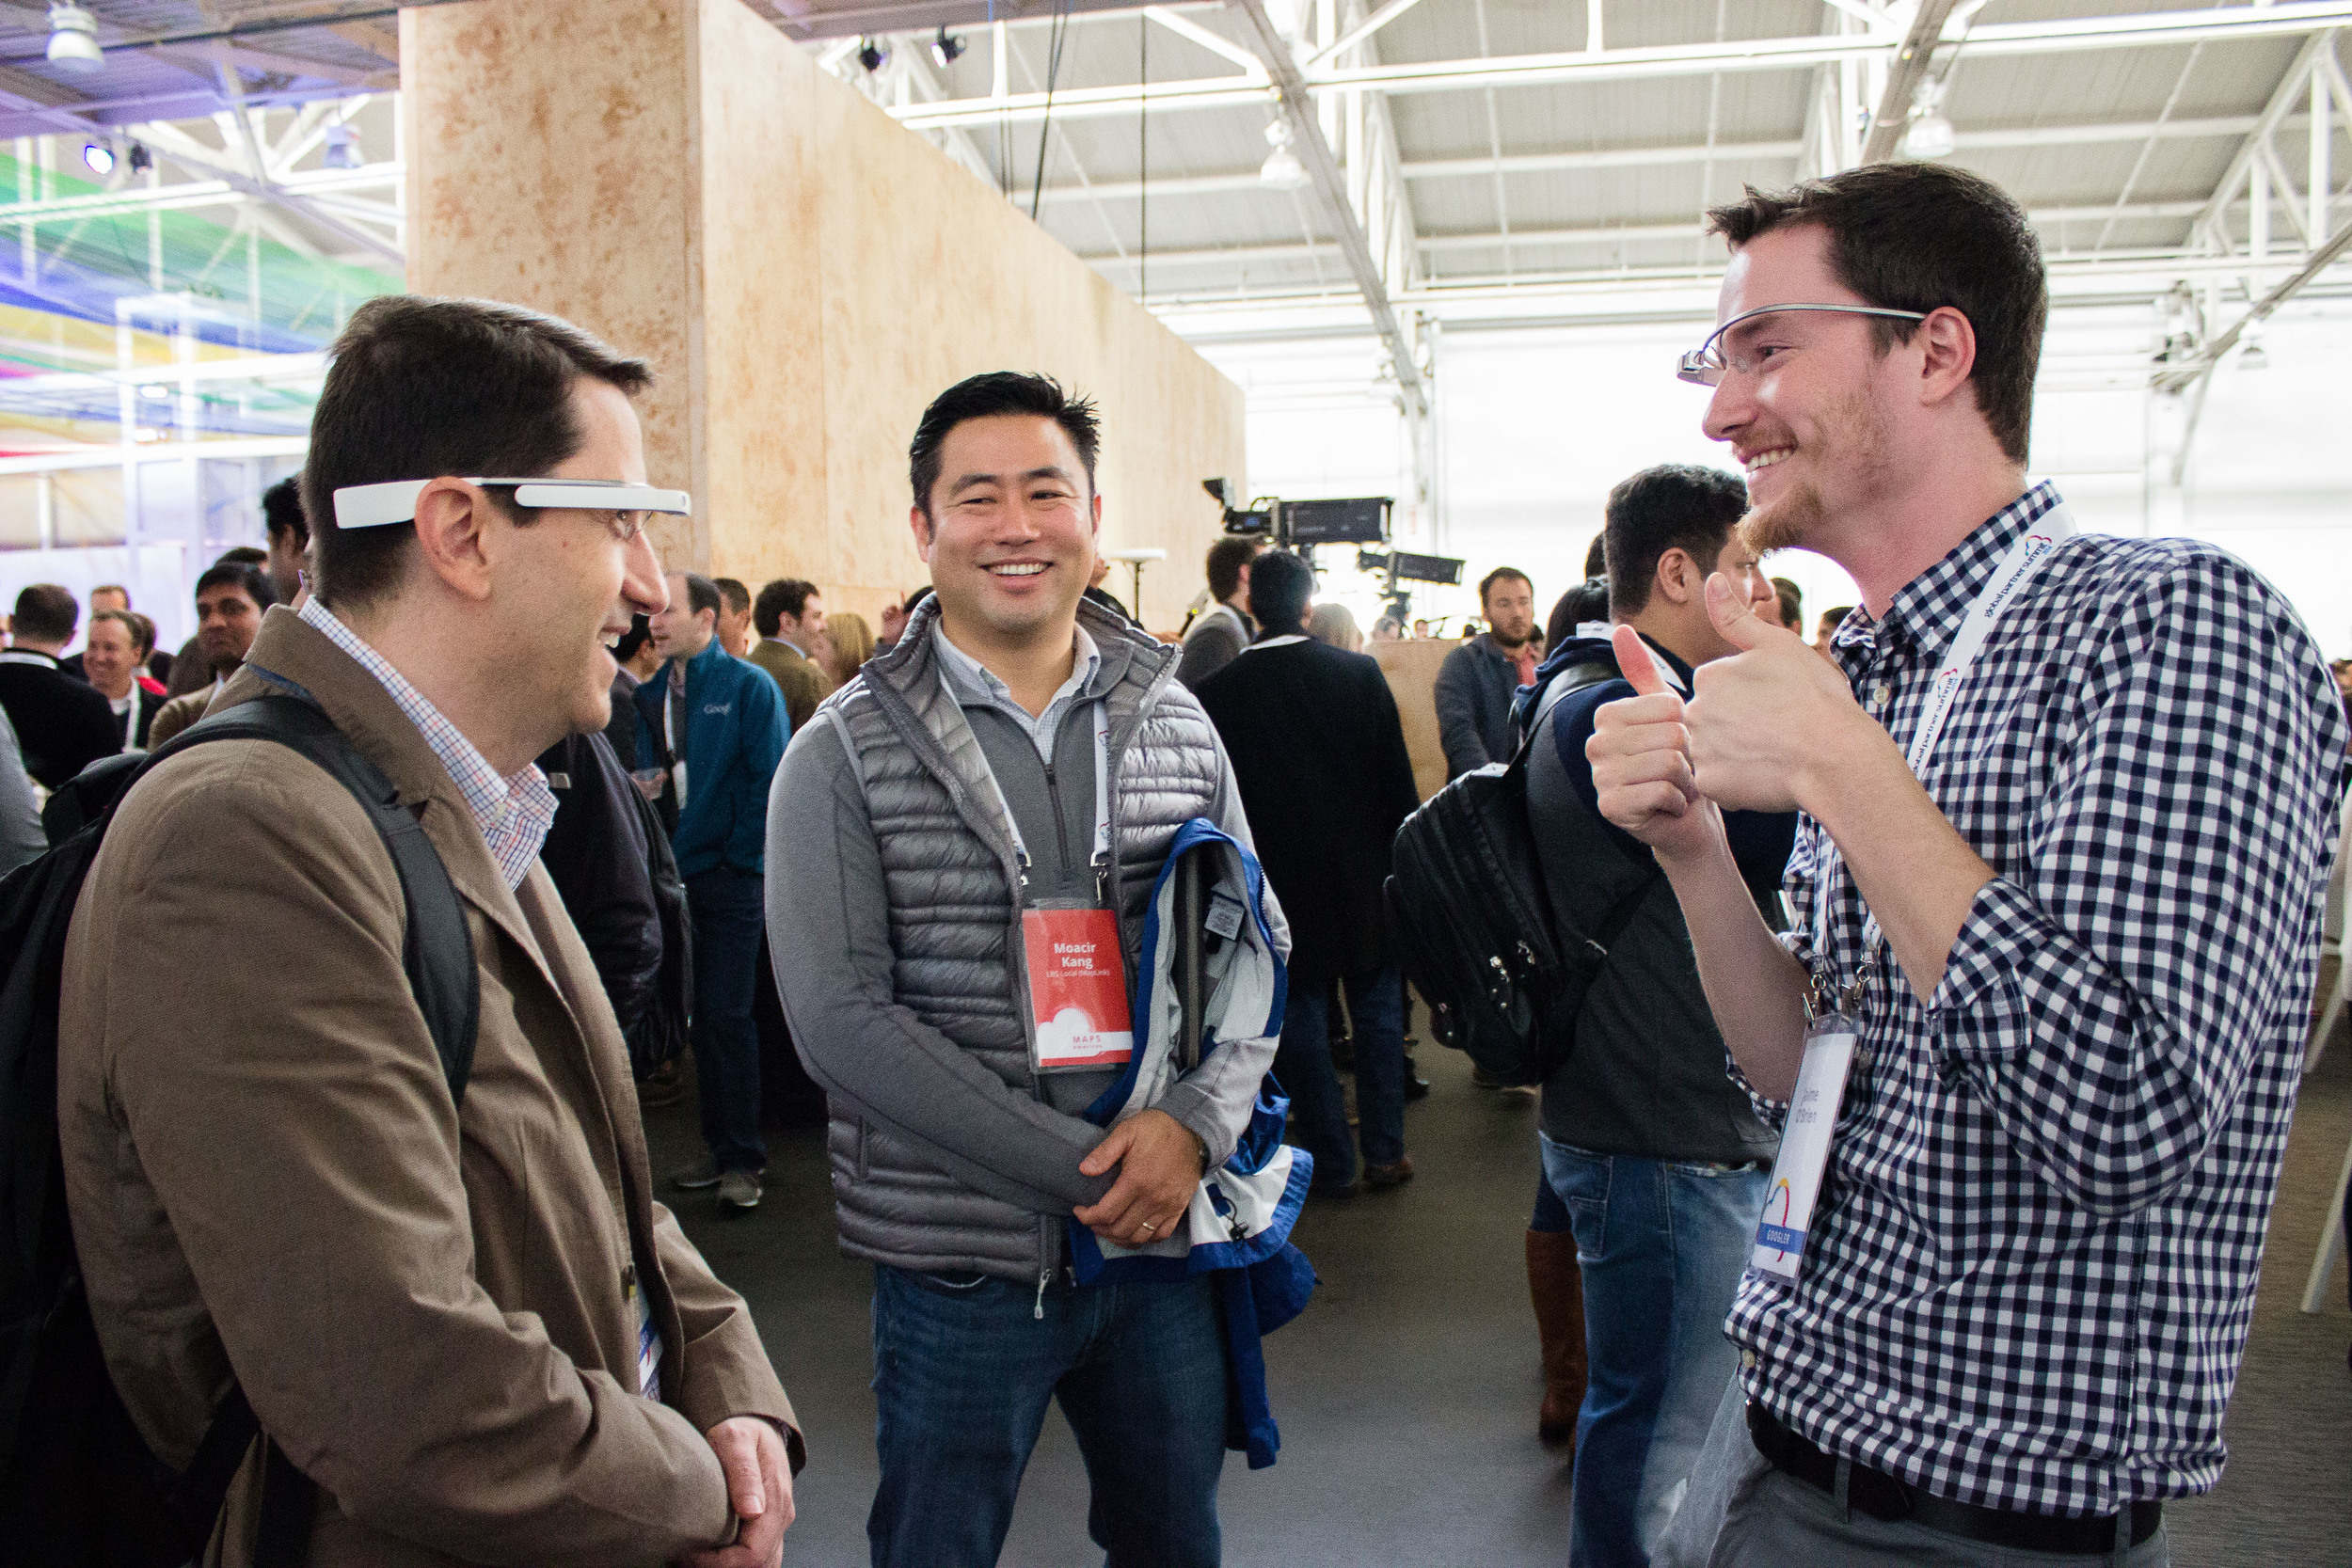 Glass was at the Global Partners Summit in March 2014 at Fort Mason - the demo booth drew a large crowd at session breaks.